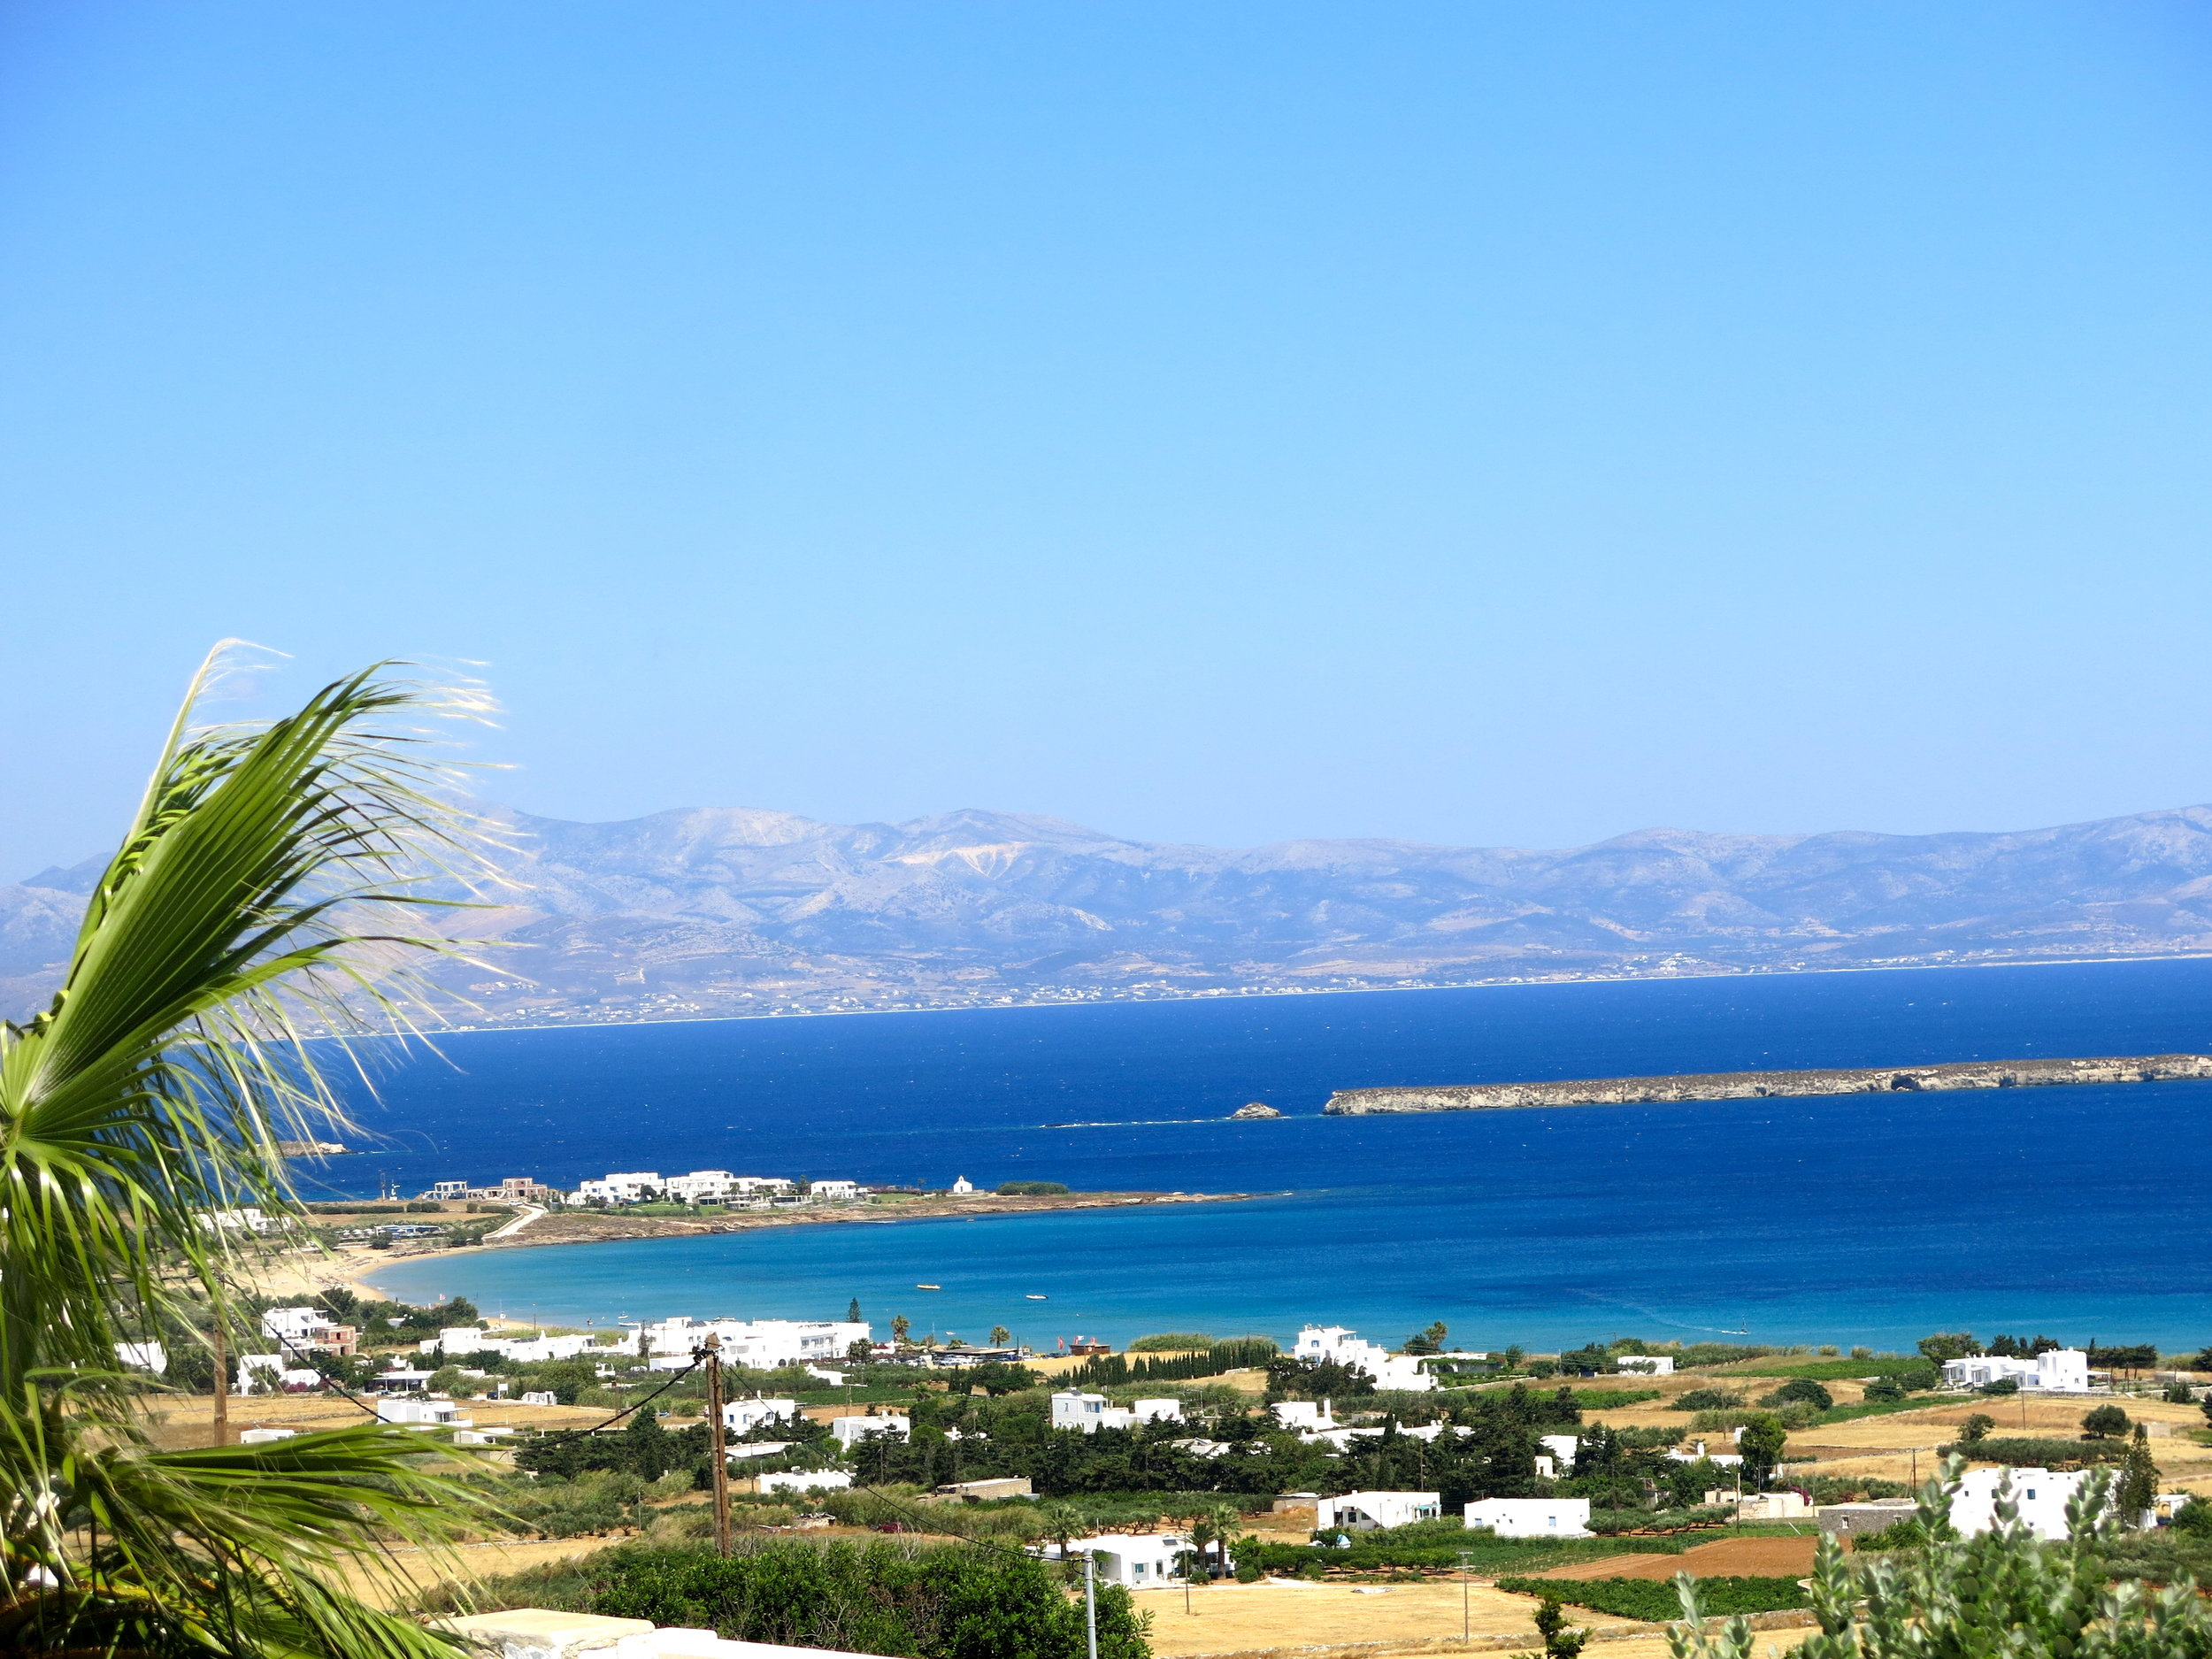 View on the bay of Golden Beach and Naxos island from our hotel in Dryos